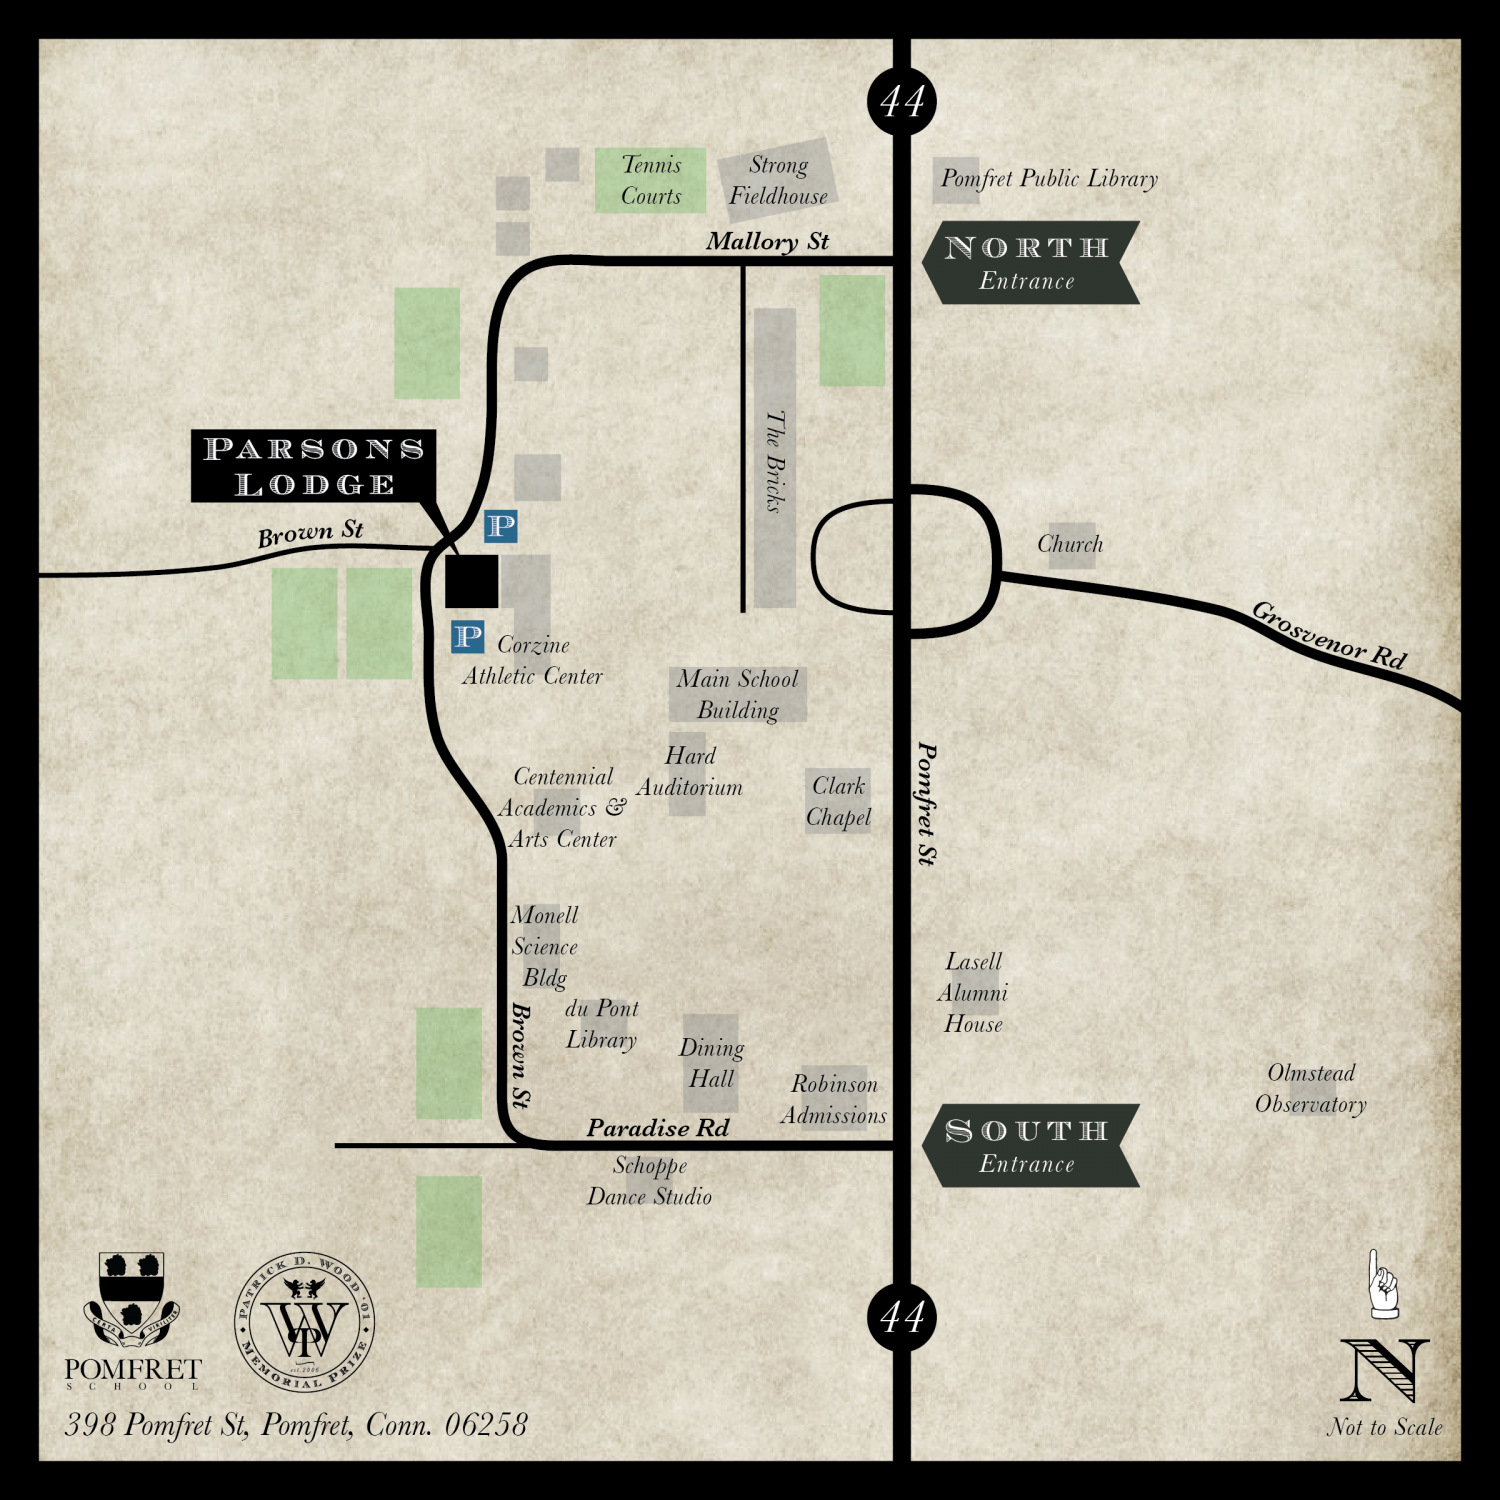 Patrick Wood Prize Fundraiser Location Map Infographic